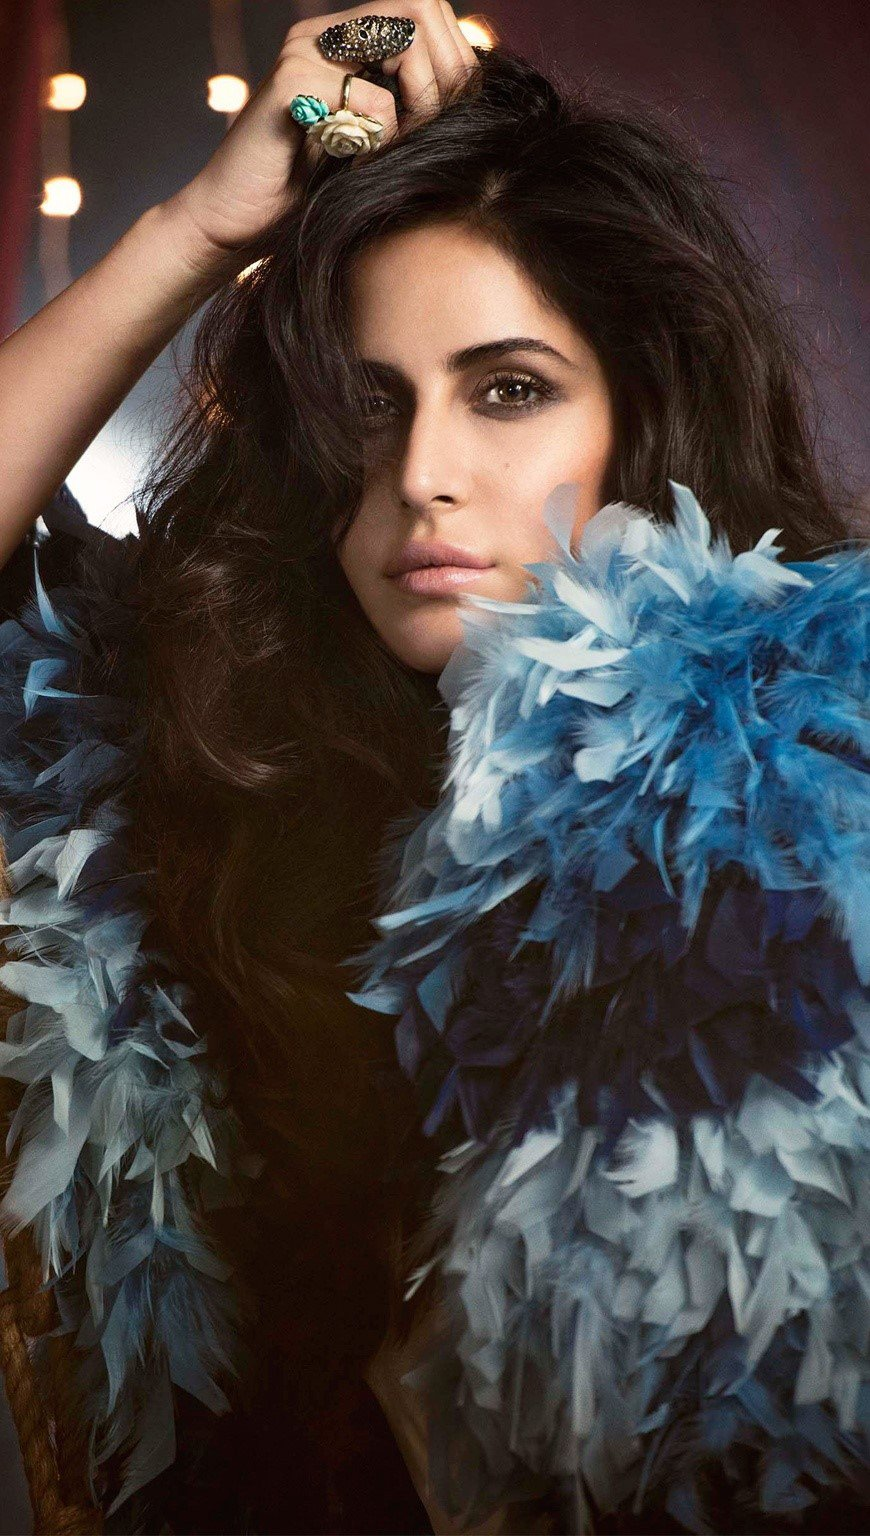 Wallpaper Kaifina Kaif with feathers Vertical